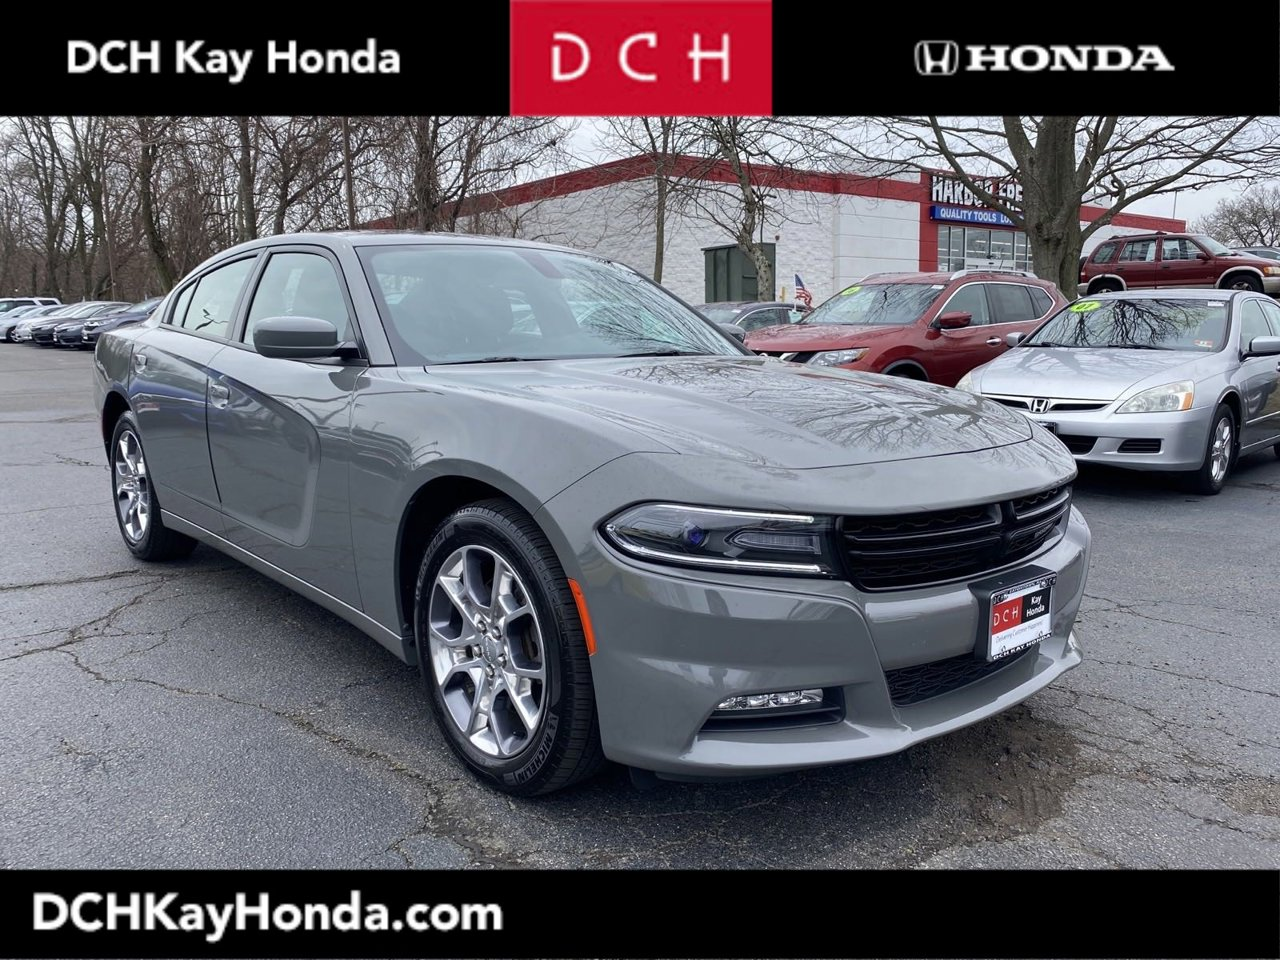 Used 2017 Dodge Charger in Eatontown, NJ